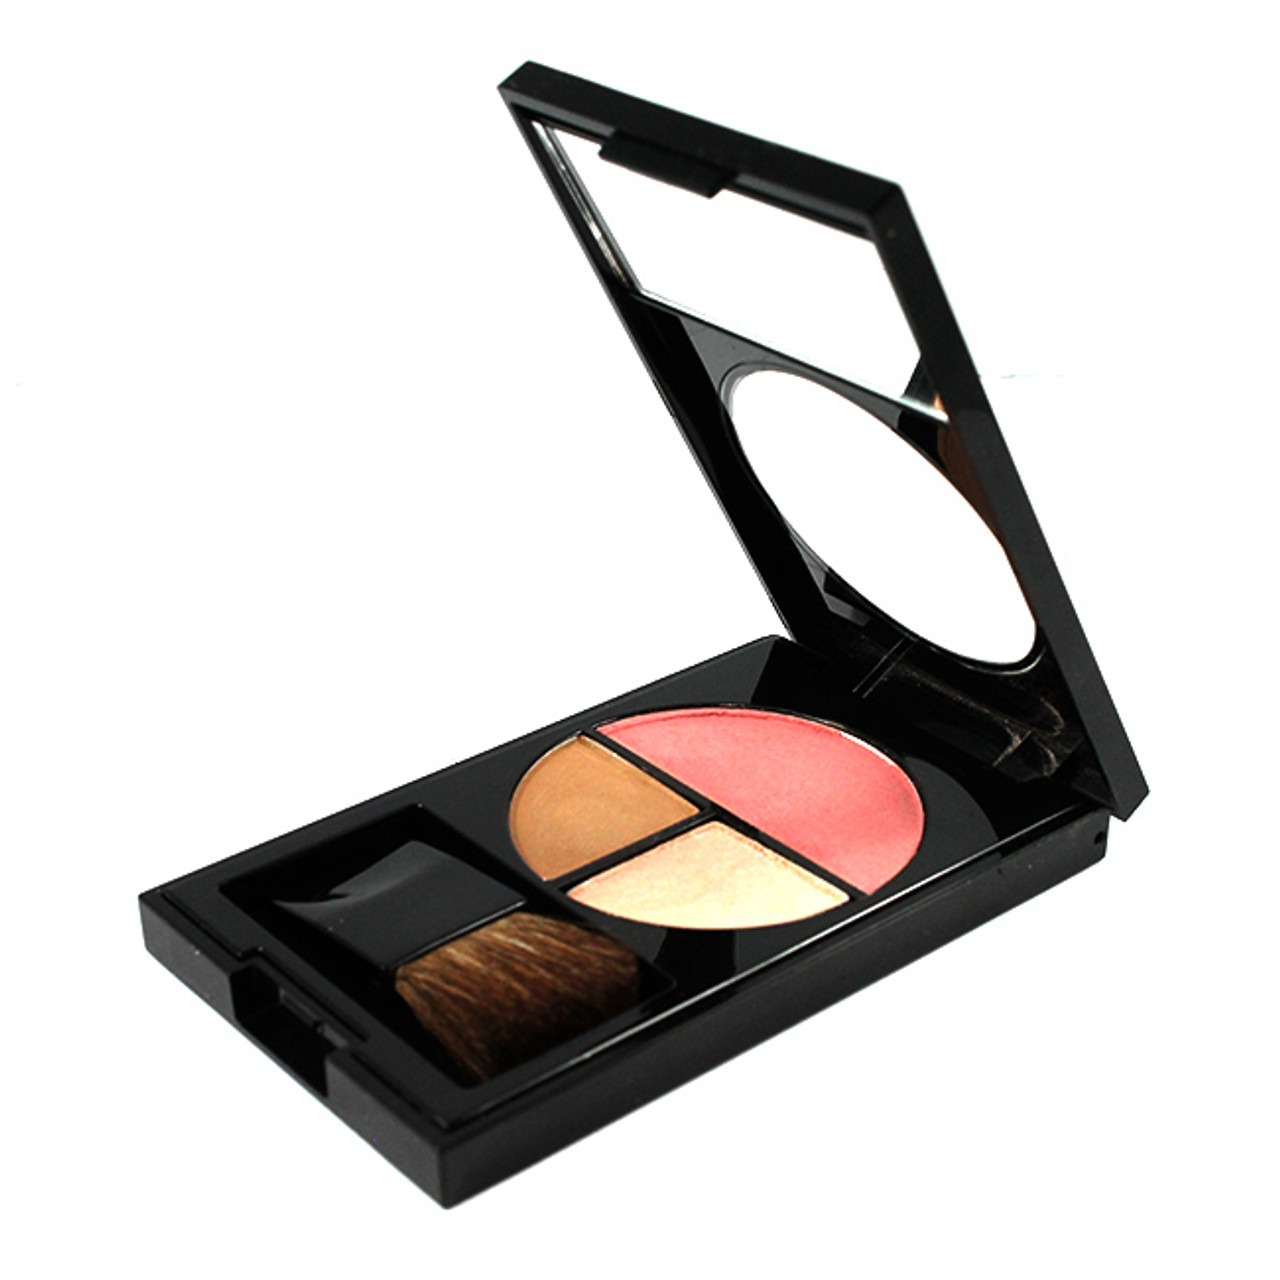 49f18bd6a2d Revlon PhotoReady Sculpting Blush Palette - BuyMeBeauty.com